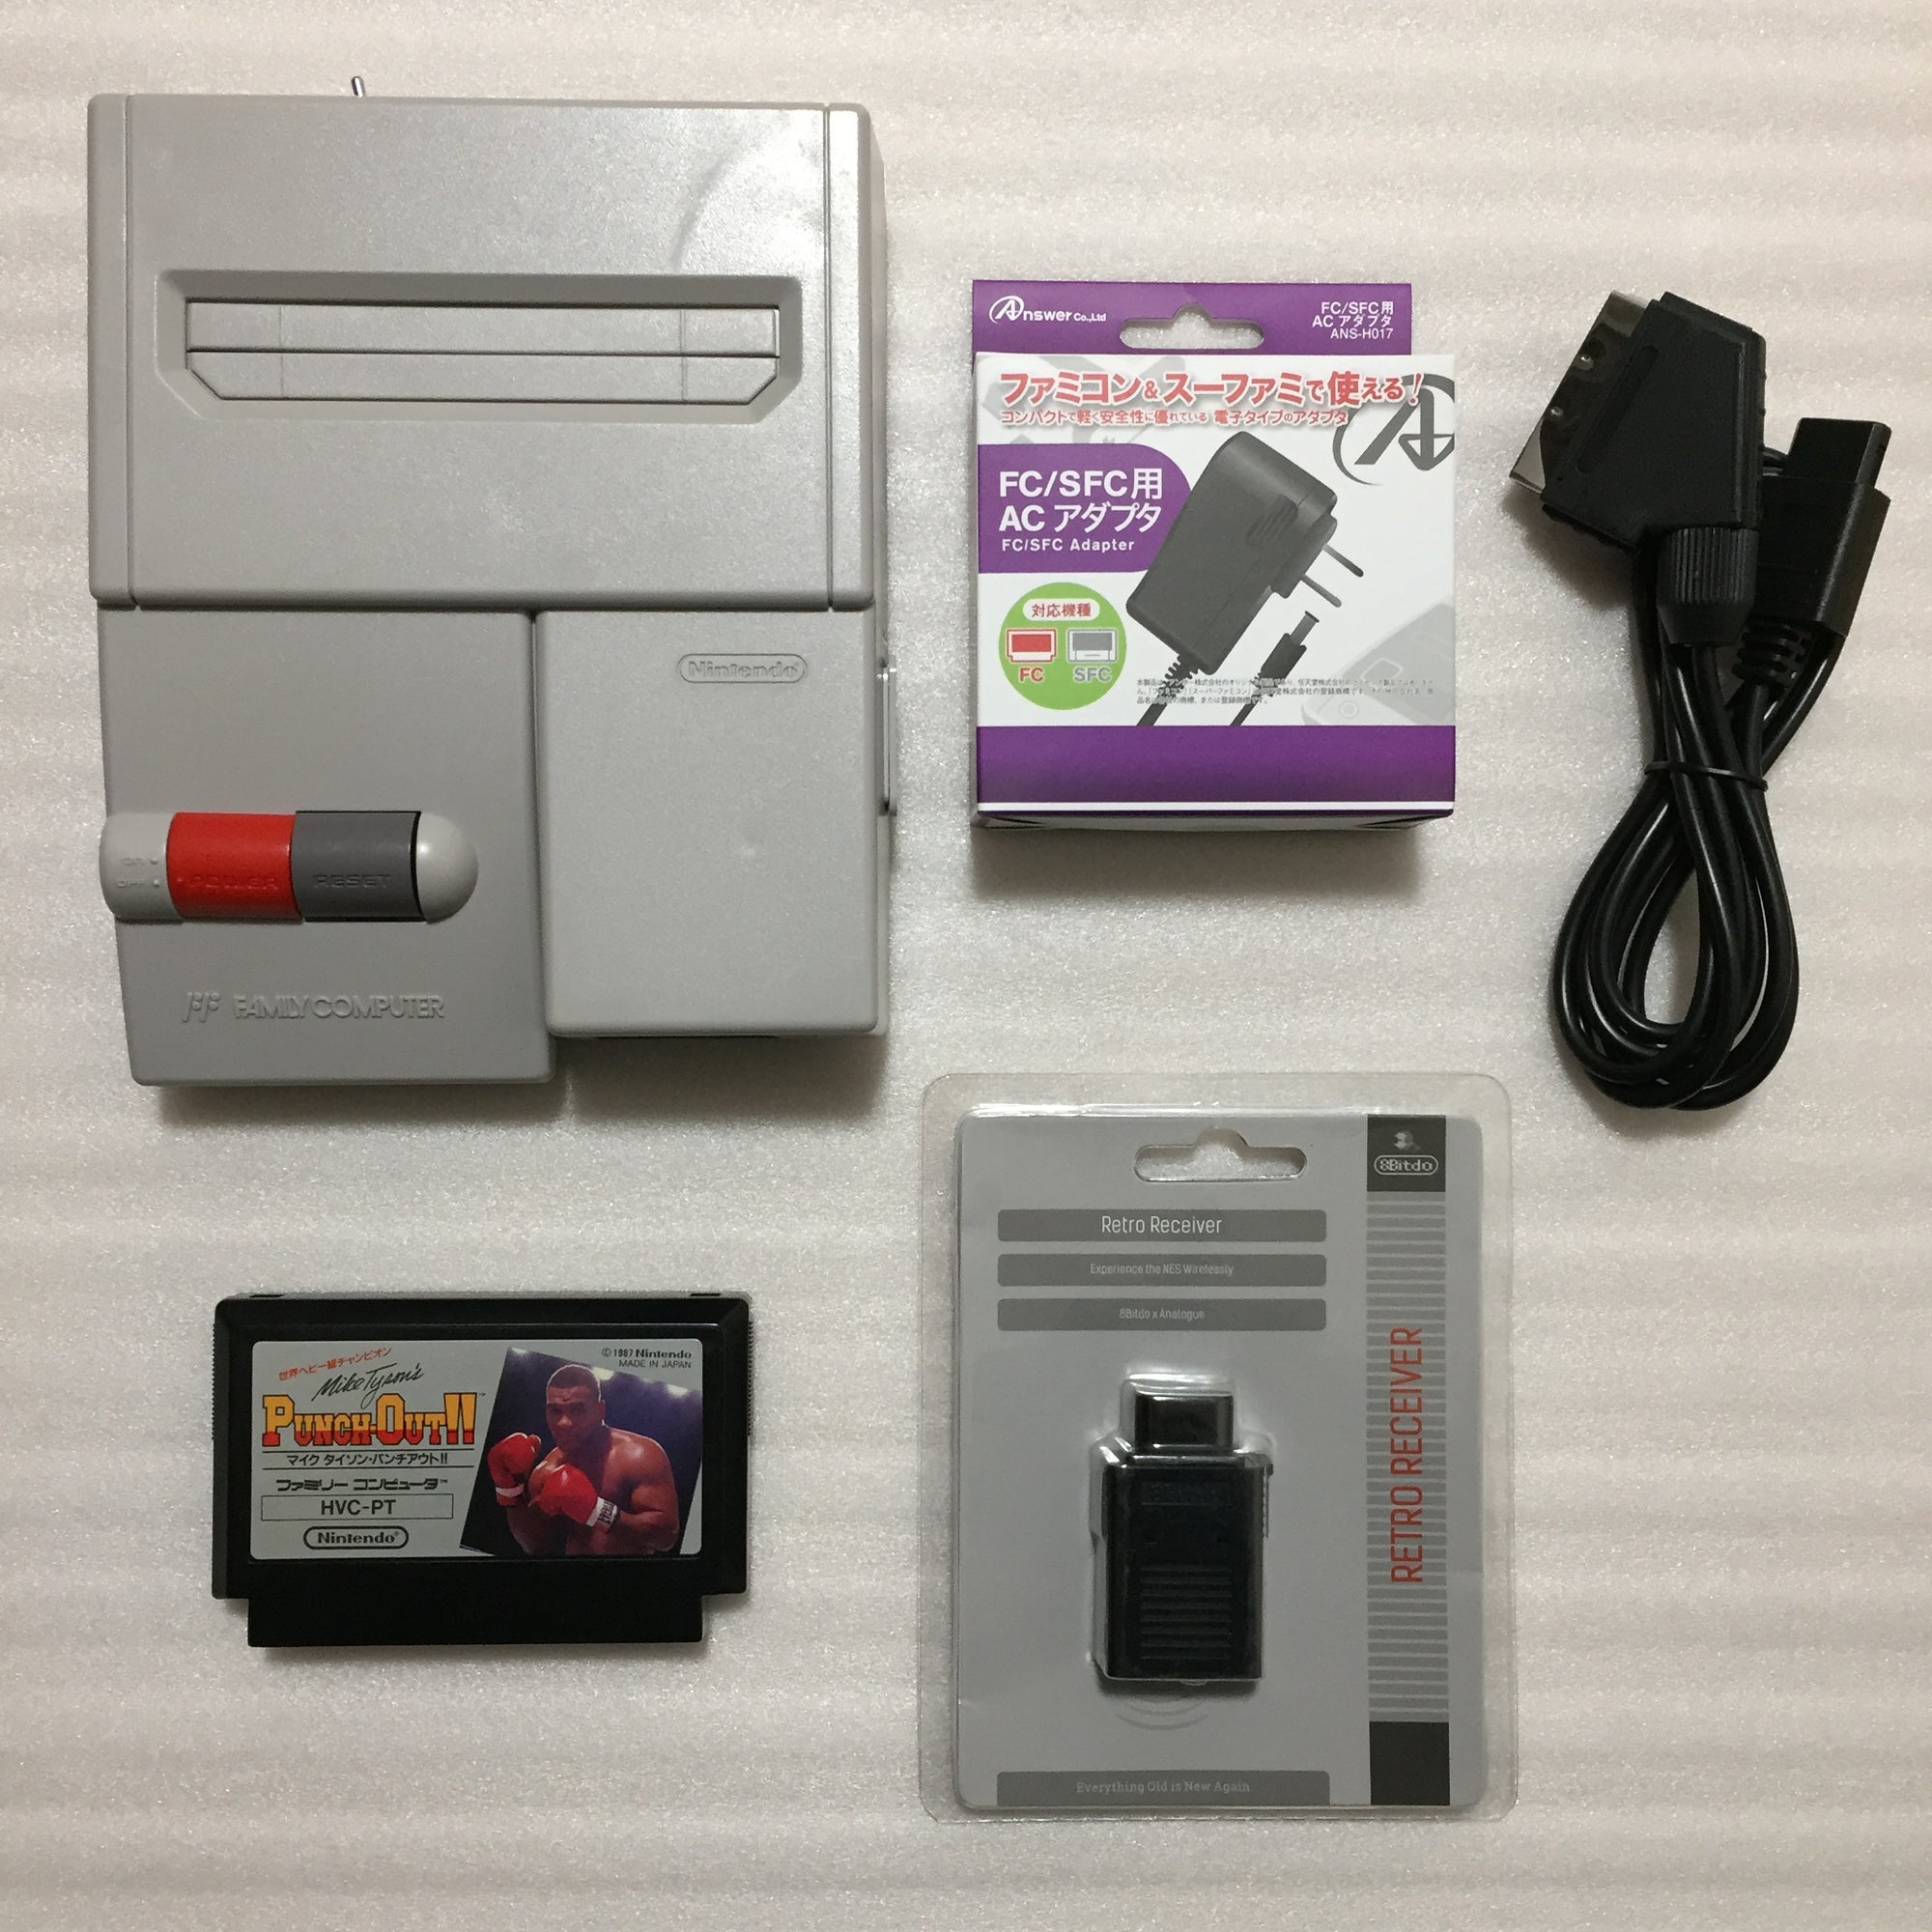 AV Famicom with NESRGB kit - Punch-Out set